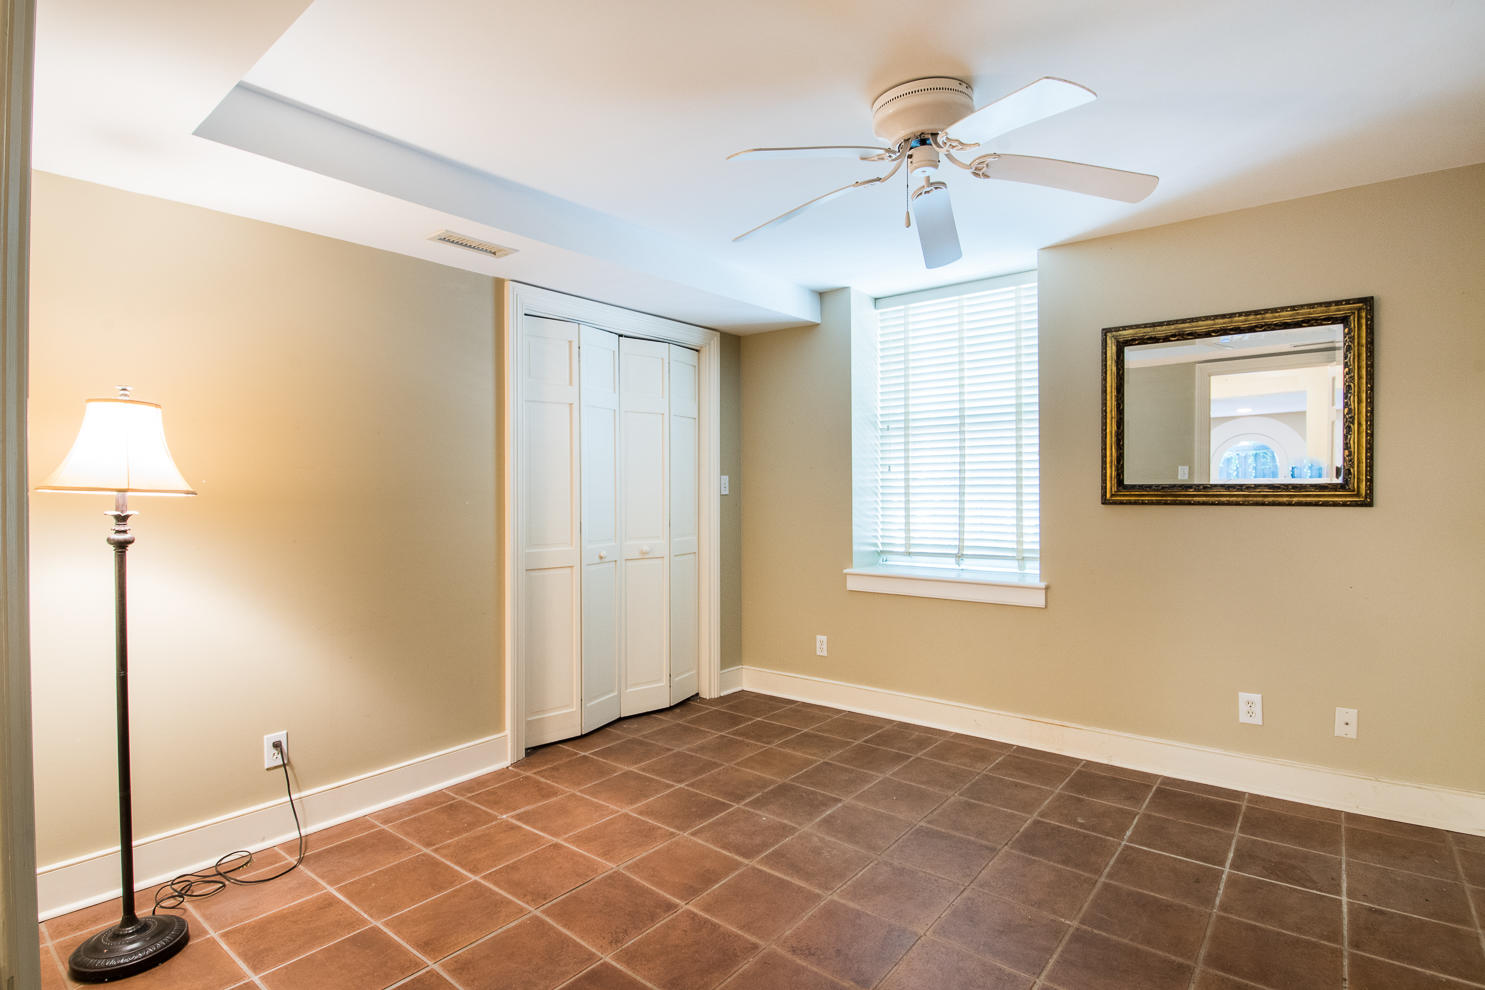 South of Broad Homes For Sale - 1 Prices, Charleston, SC - 60